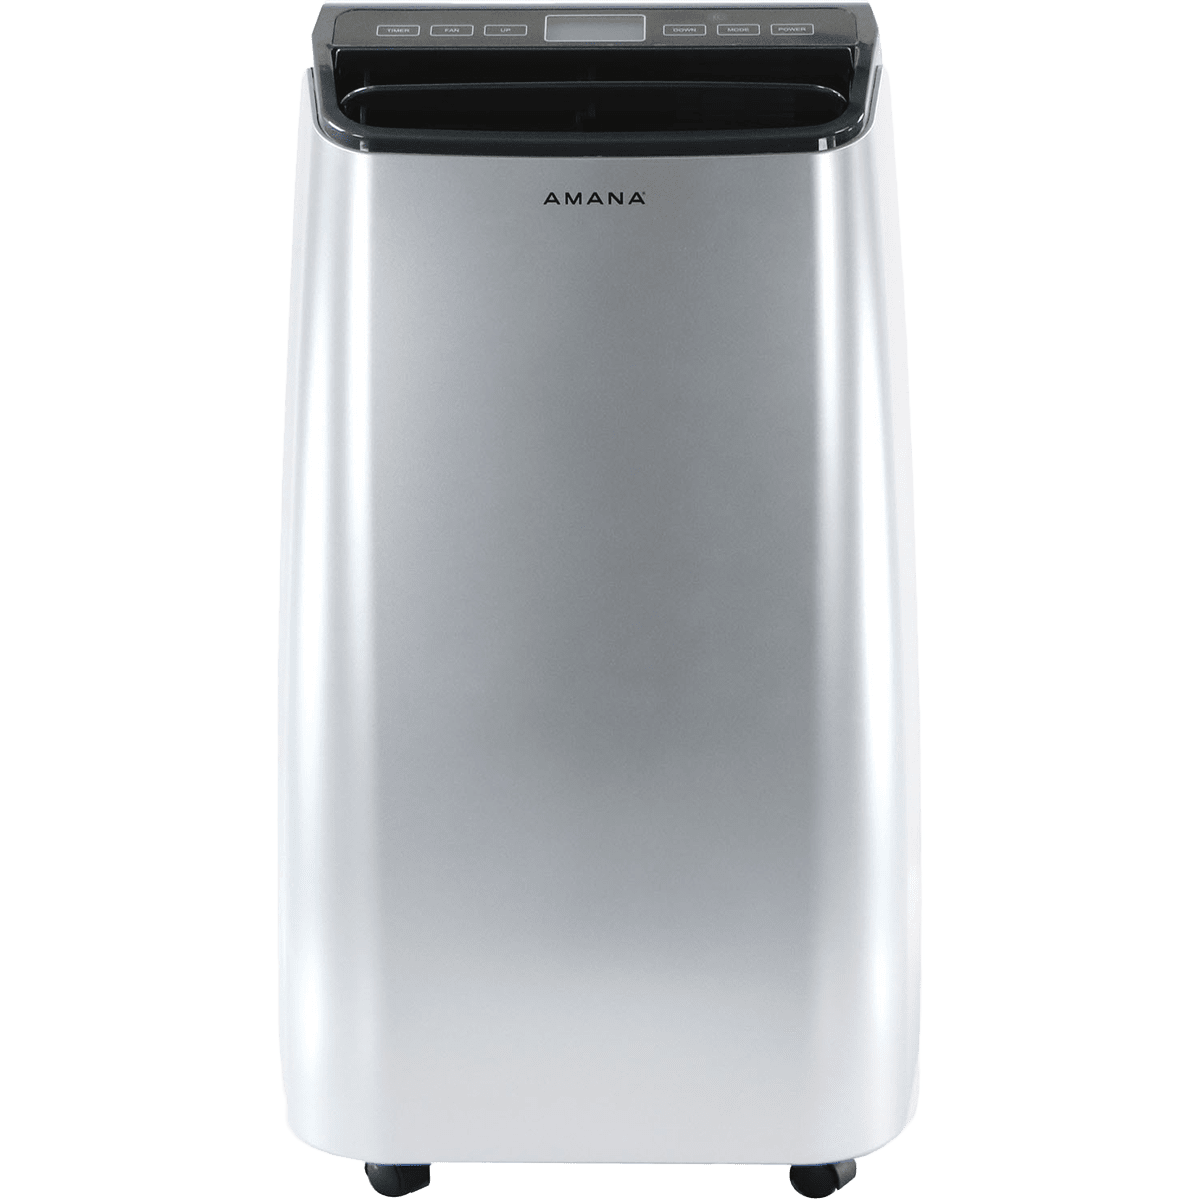 Amana Portable Air Conditioner Sylvane